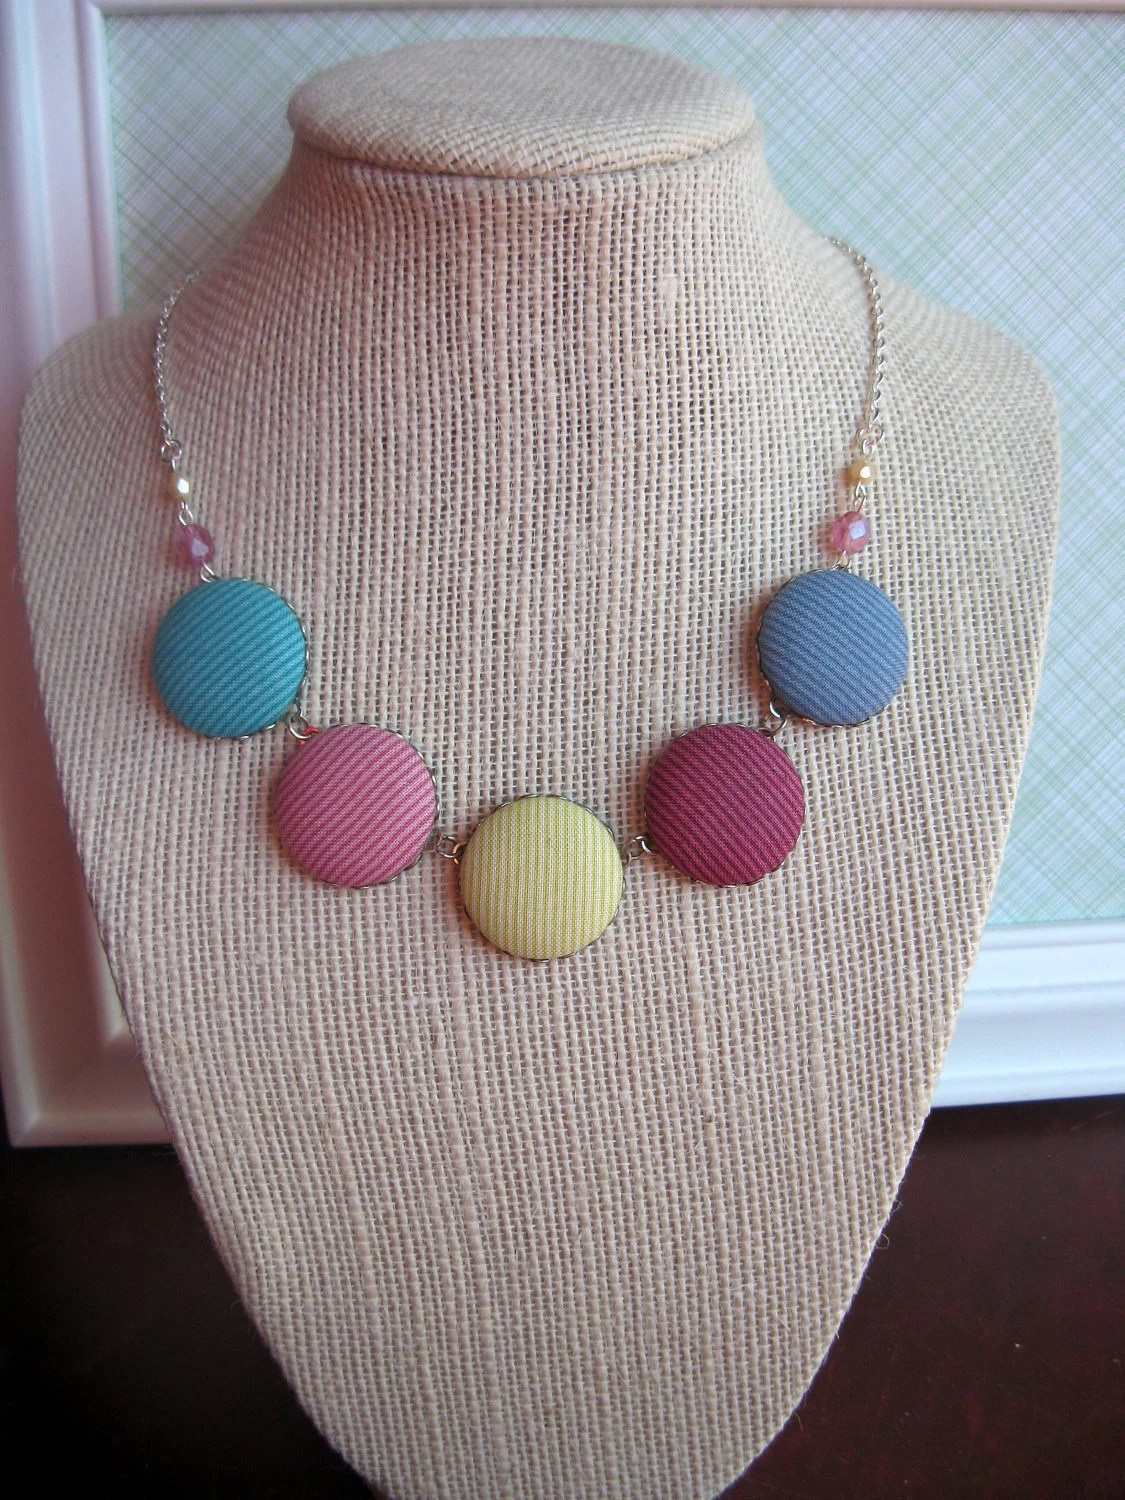 Fabric button necklace in mauve, magenta, pink, blue, navy, chartruese and teal with Czech glass accents